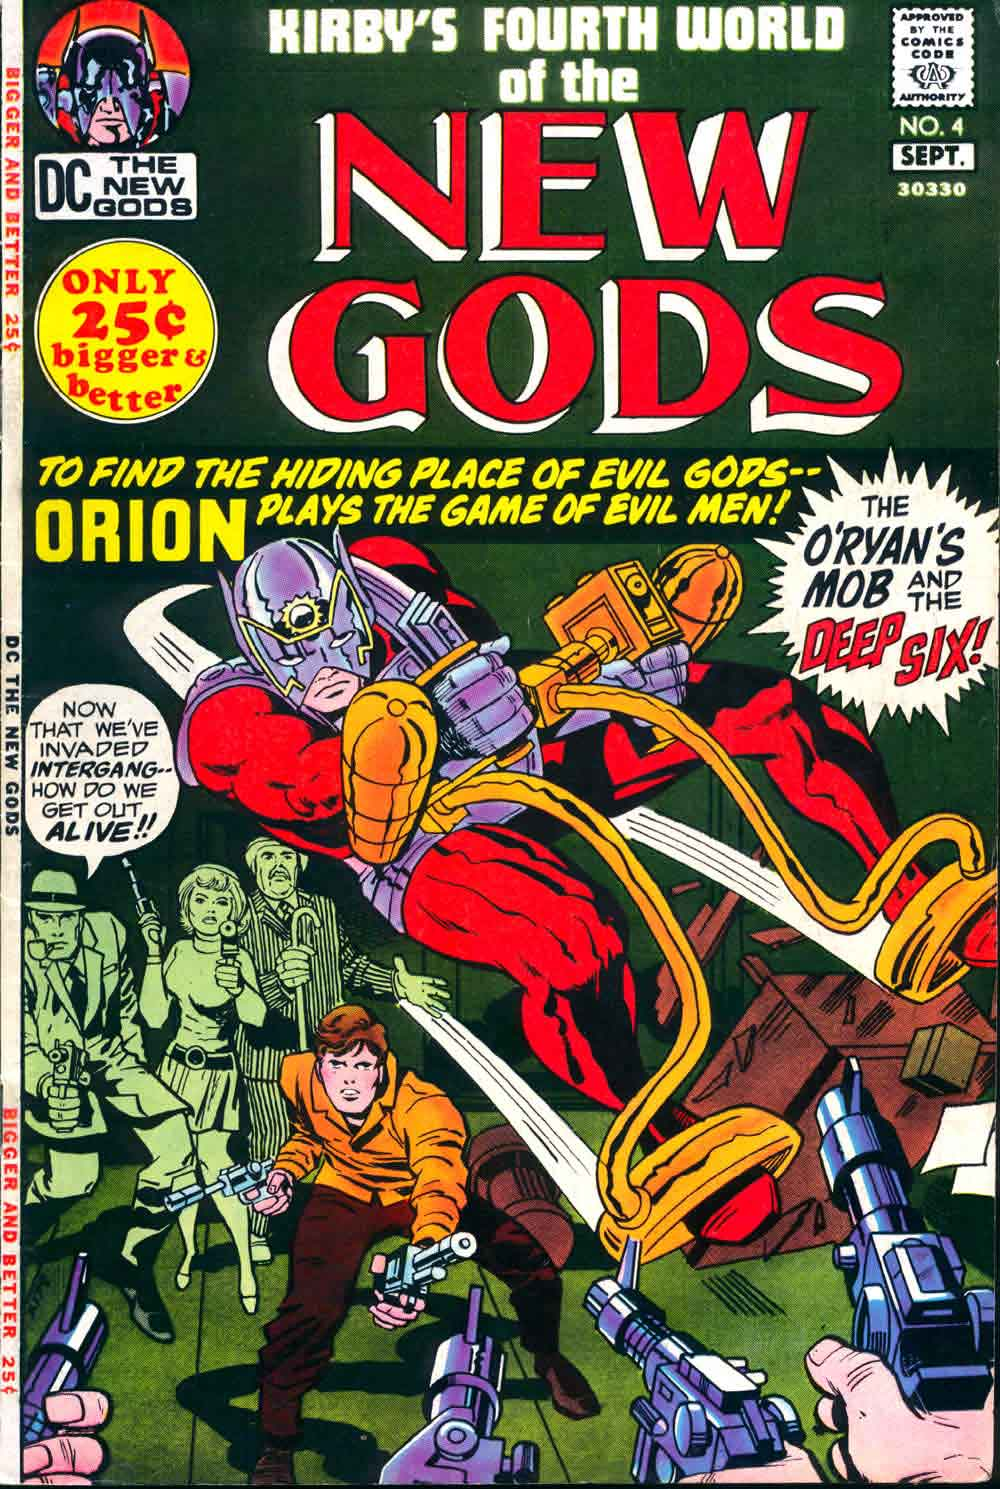 New Gods 4  Jack Kirby art cover  reprint  Pencil Ink